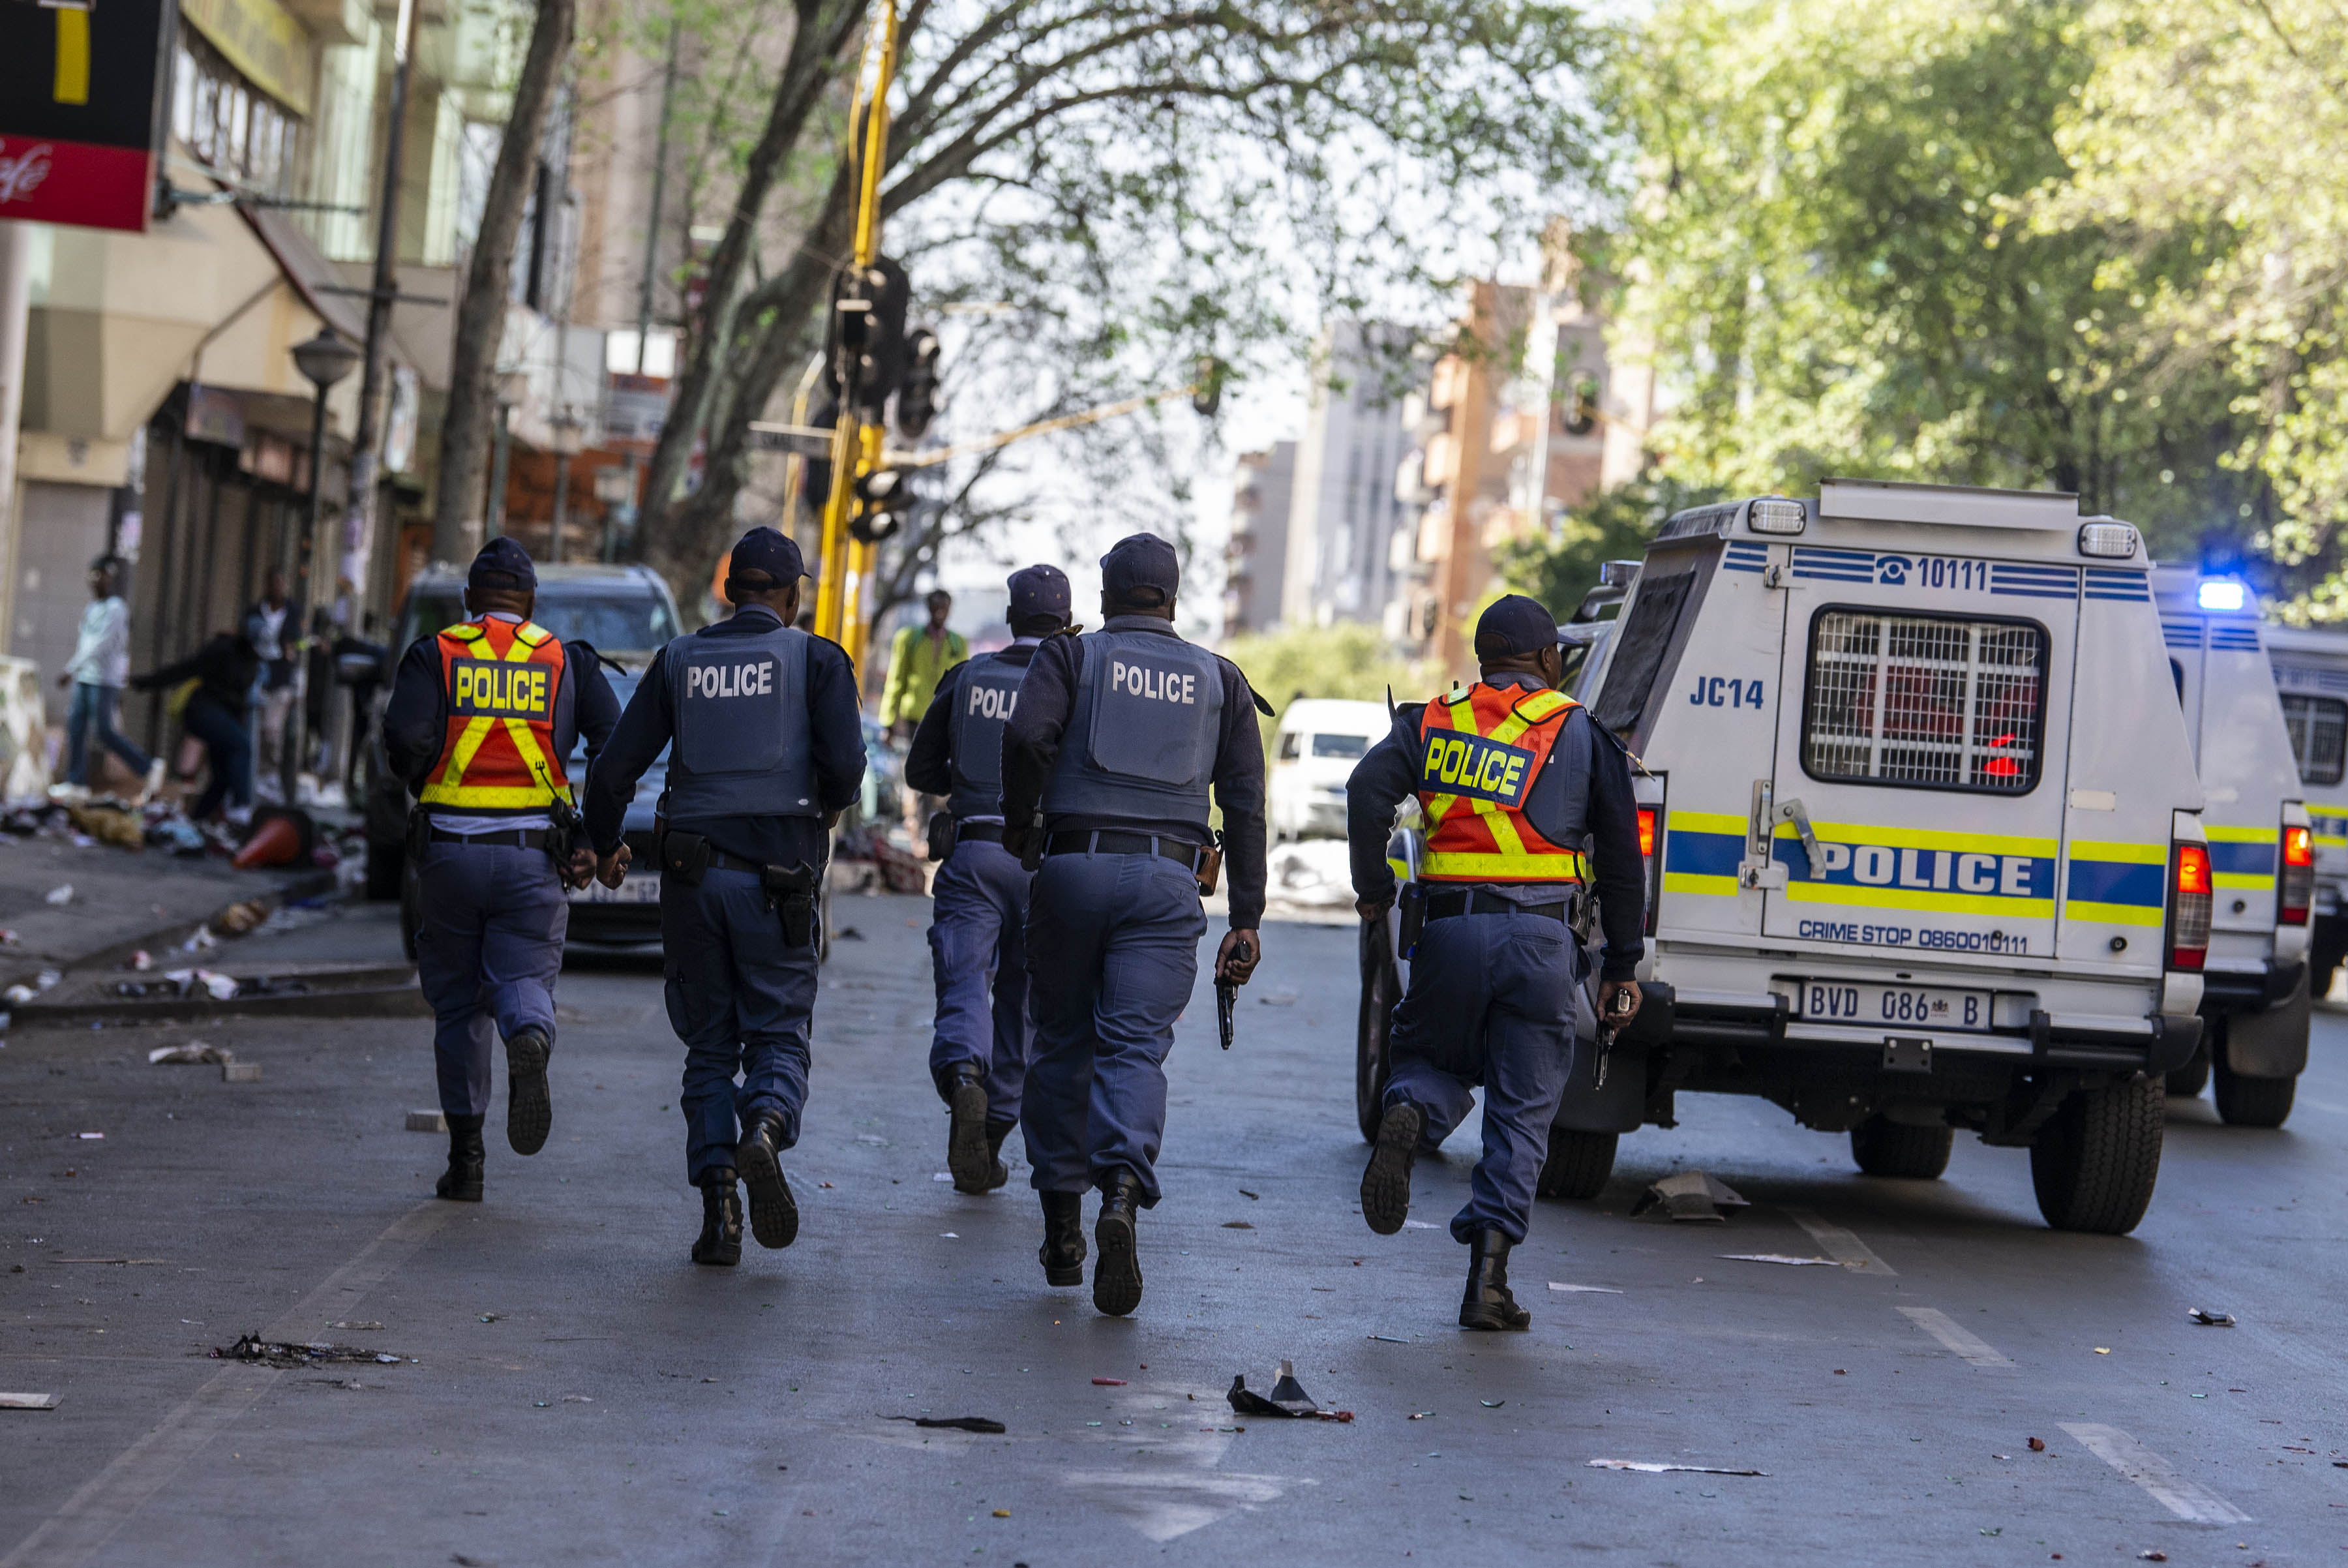 2 September 2019: The police were vastly outnumbered and ill-prepared for the mob of people who ran riot through Joburg's central business district.